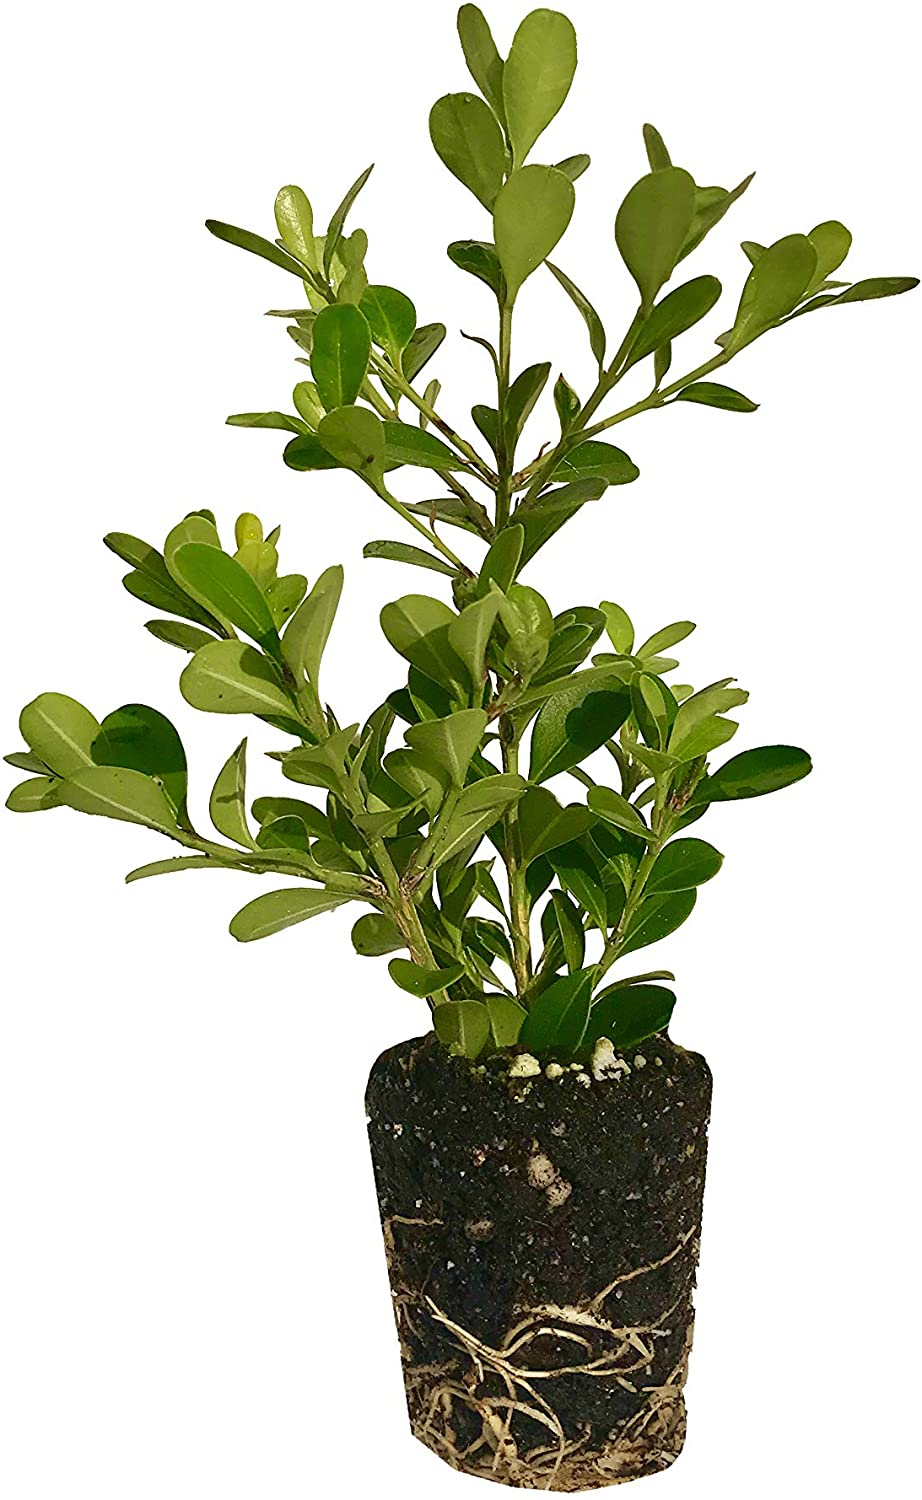 Japanese Boxwood - 60 Live Plants - Buxus Fast Growing Cold Hardy Evergreen Shrub